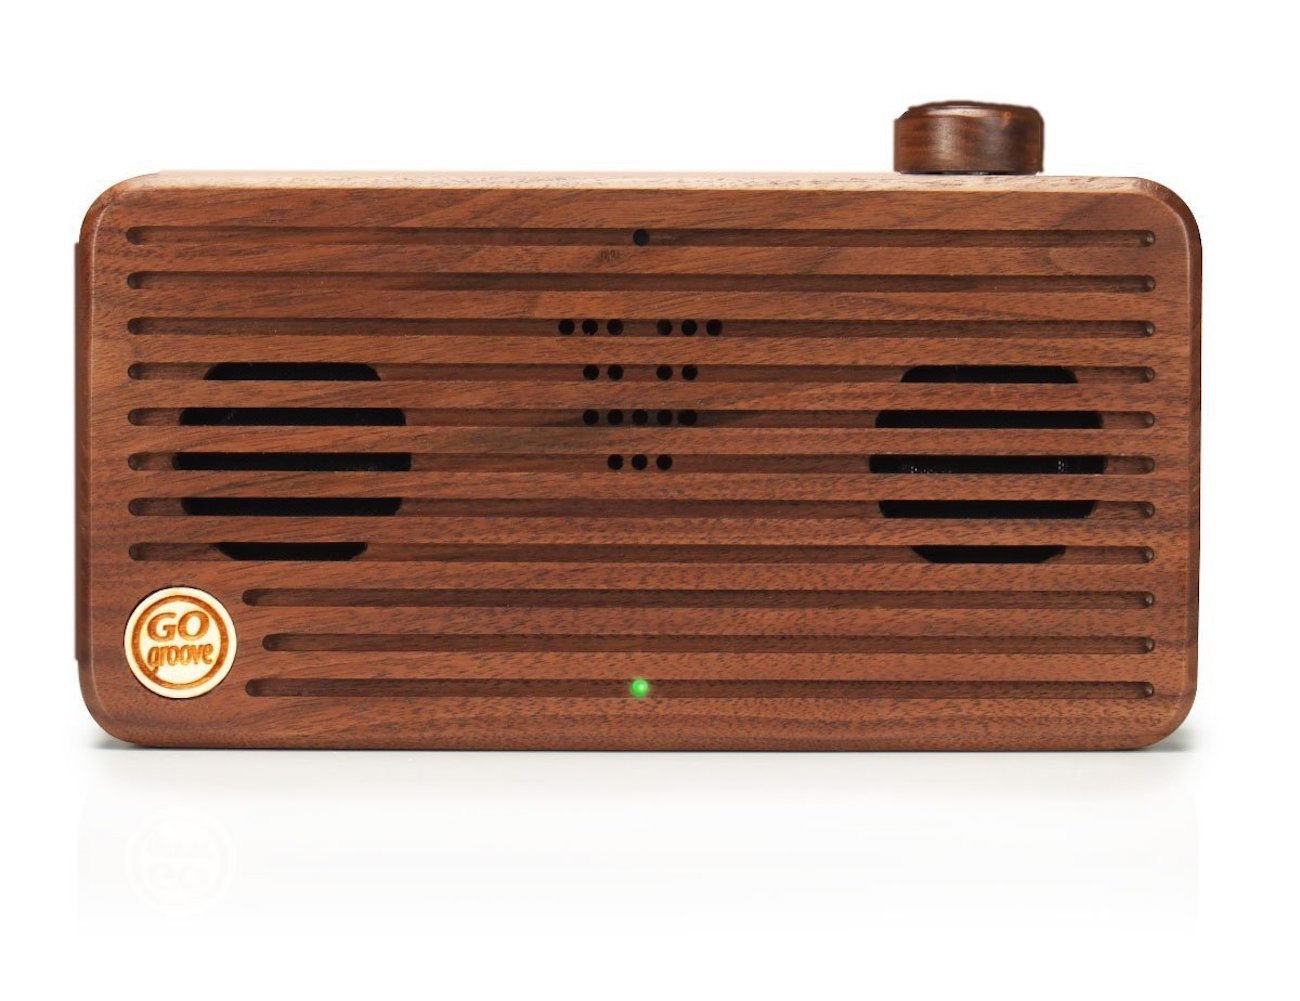 Hand Crafted Wood Speaker by Go Groove